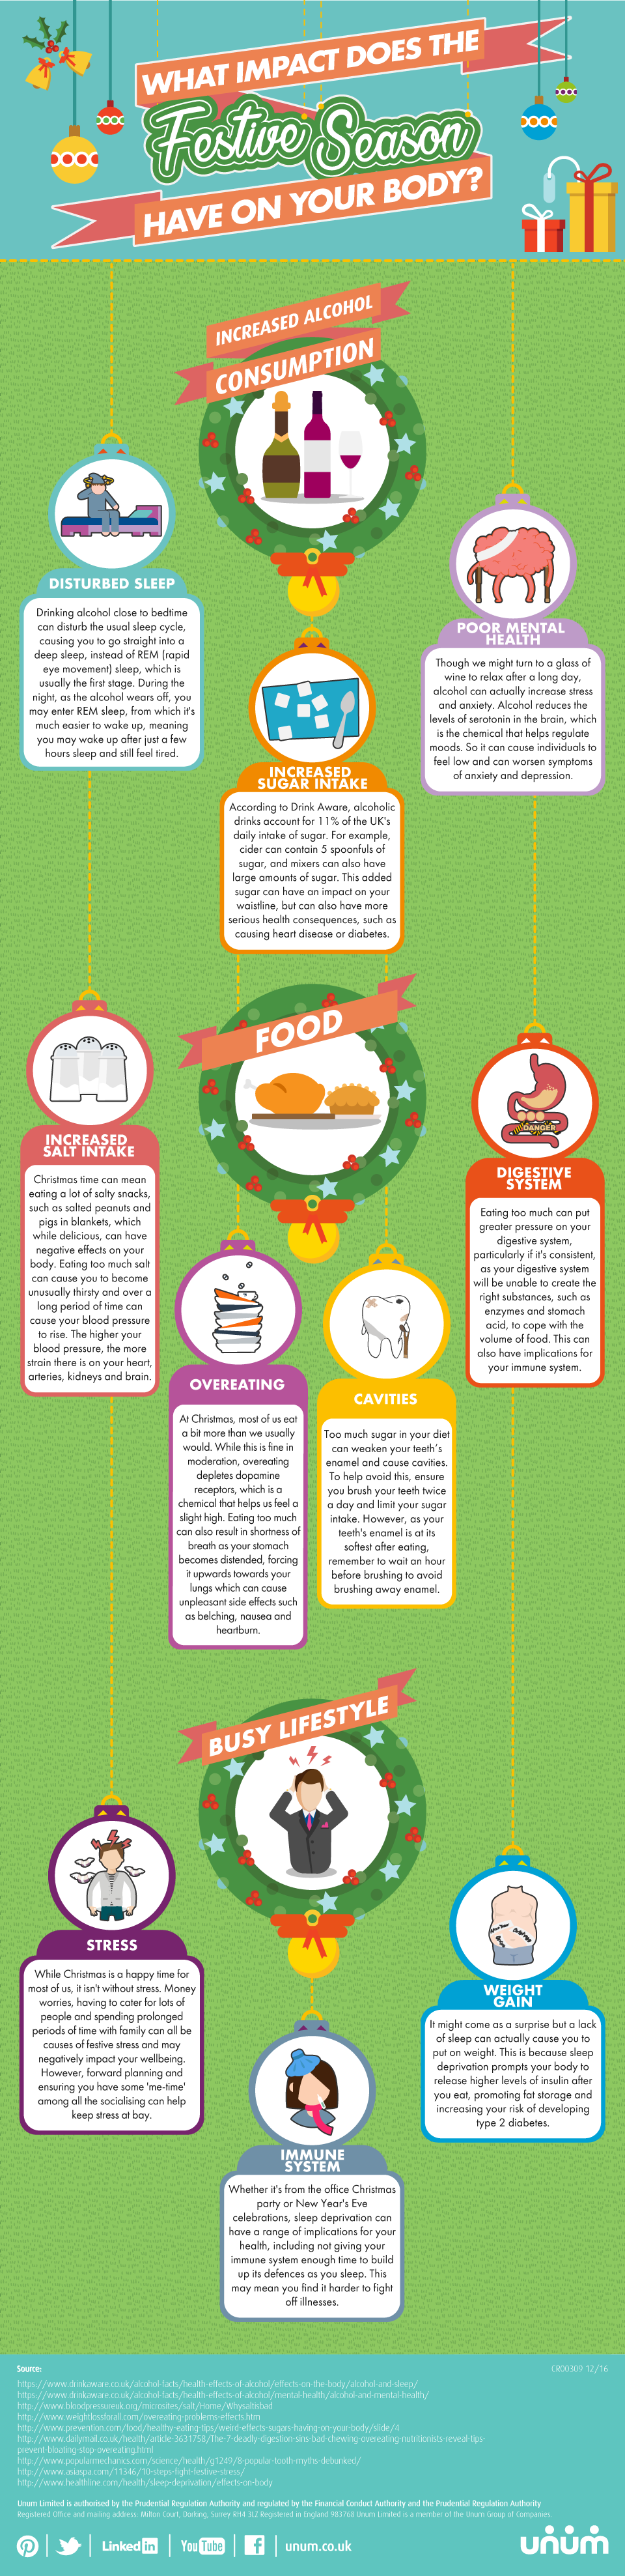 What Impact Does The Festive Season Have On Your Body?